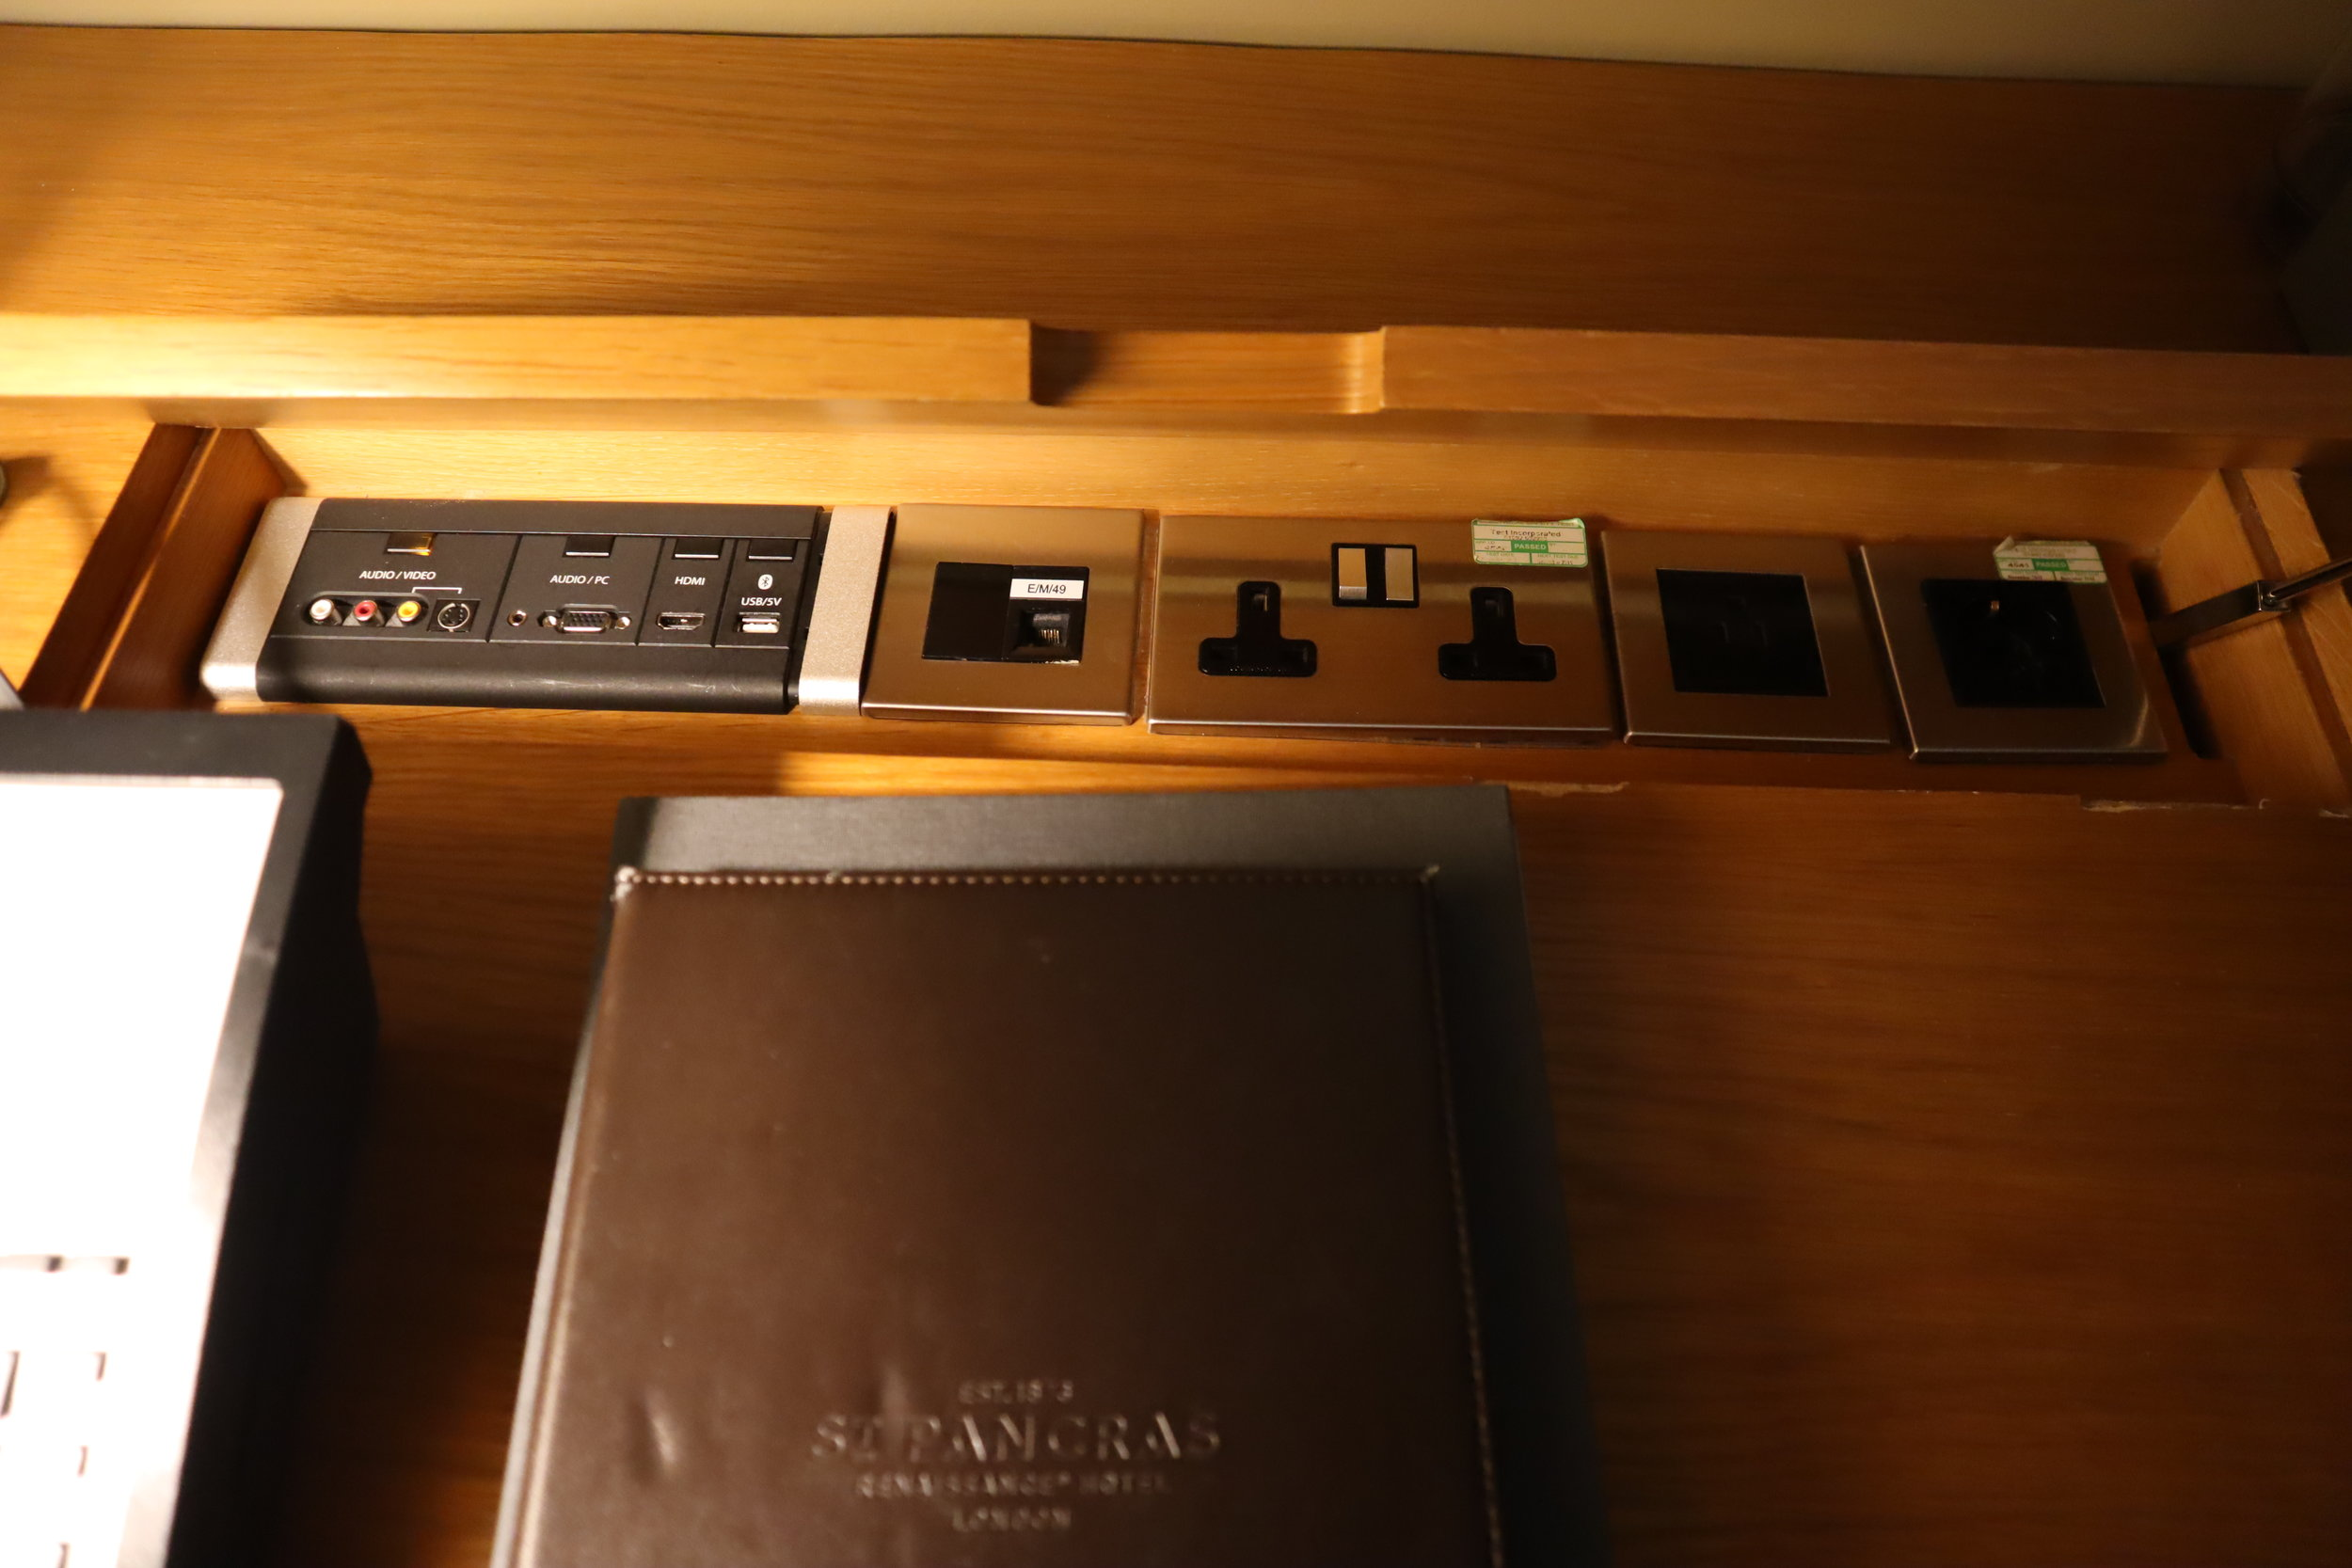 St. Pancras Renaissance Hotel London – USB and power outlets